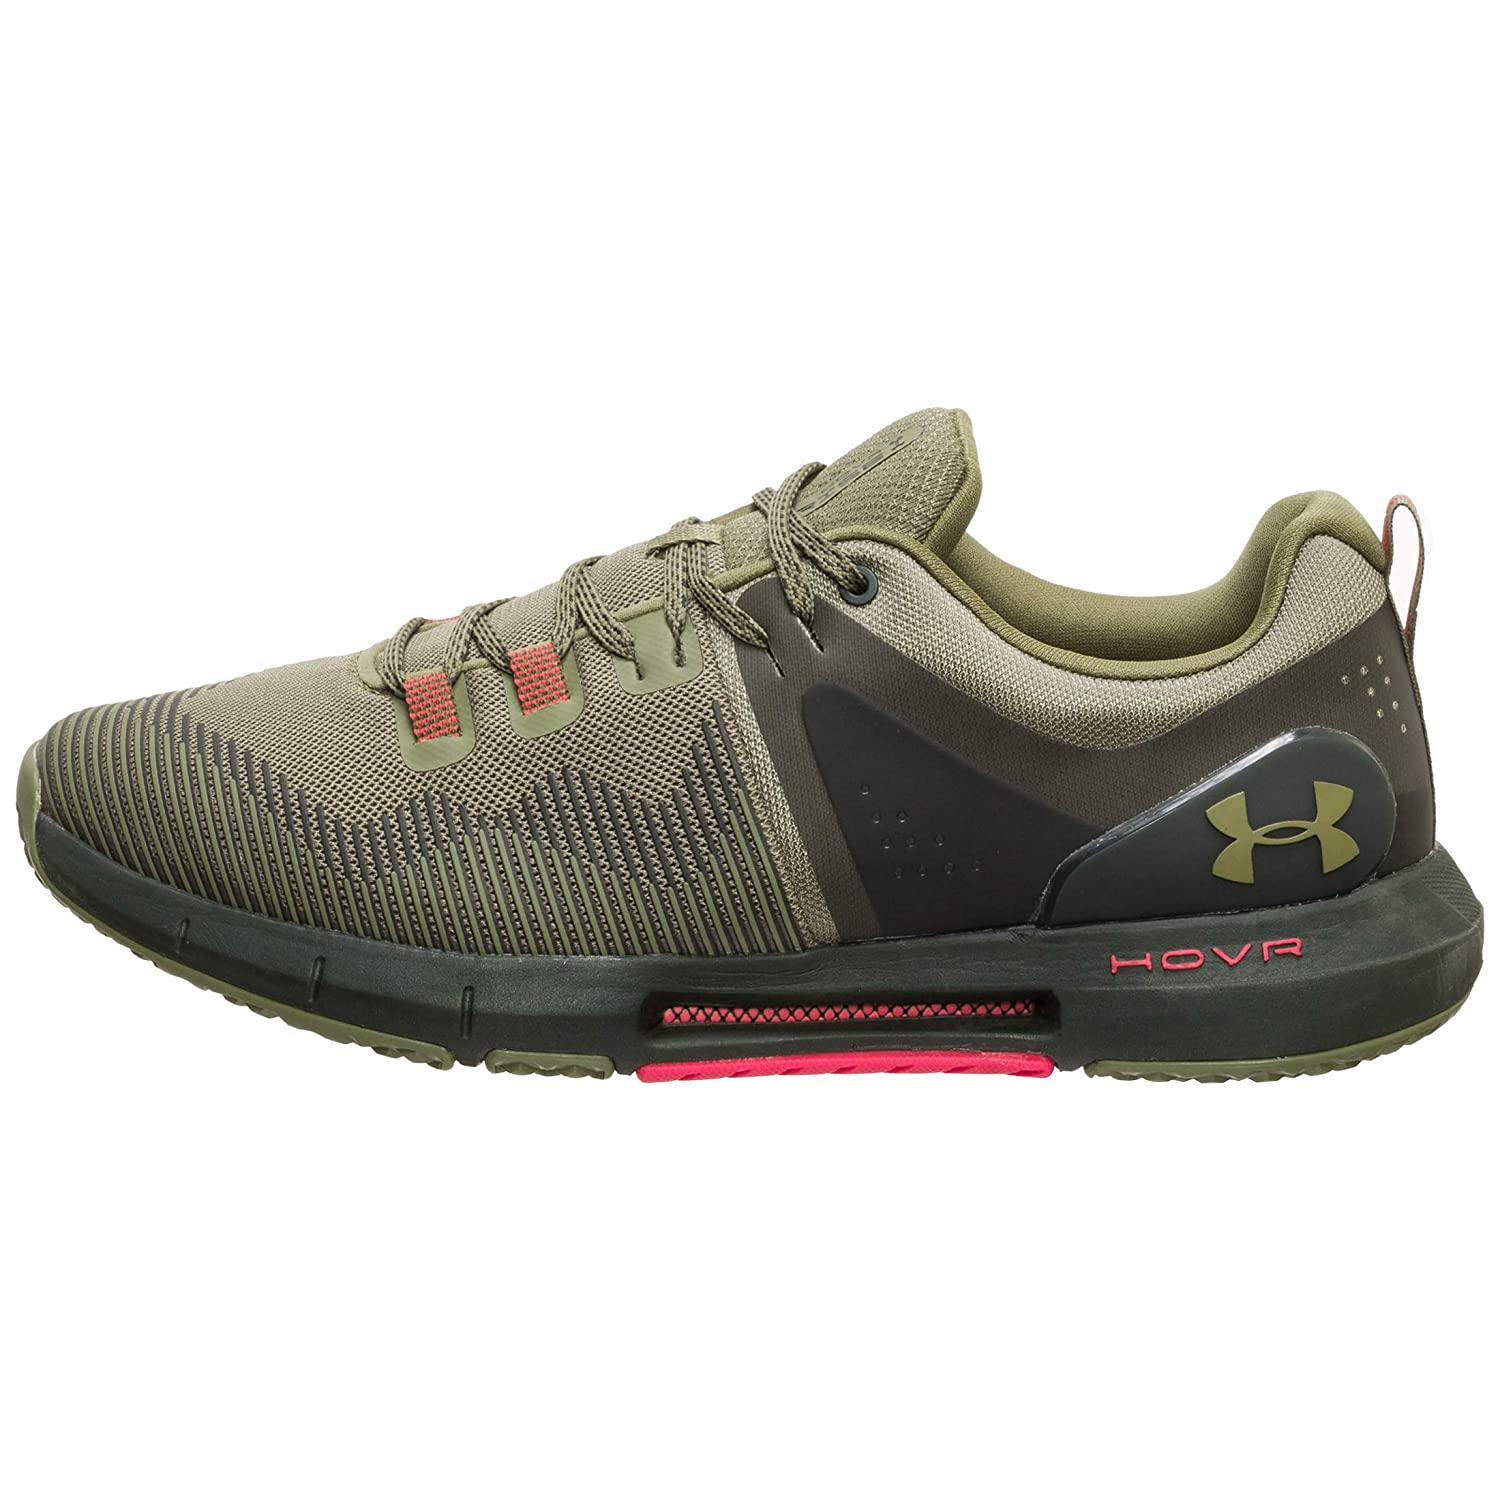 Under Armour HOVR Rise Chaussures de Fitness Homme